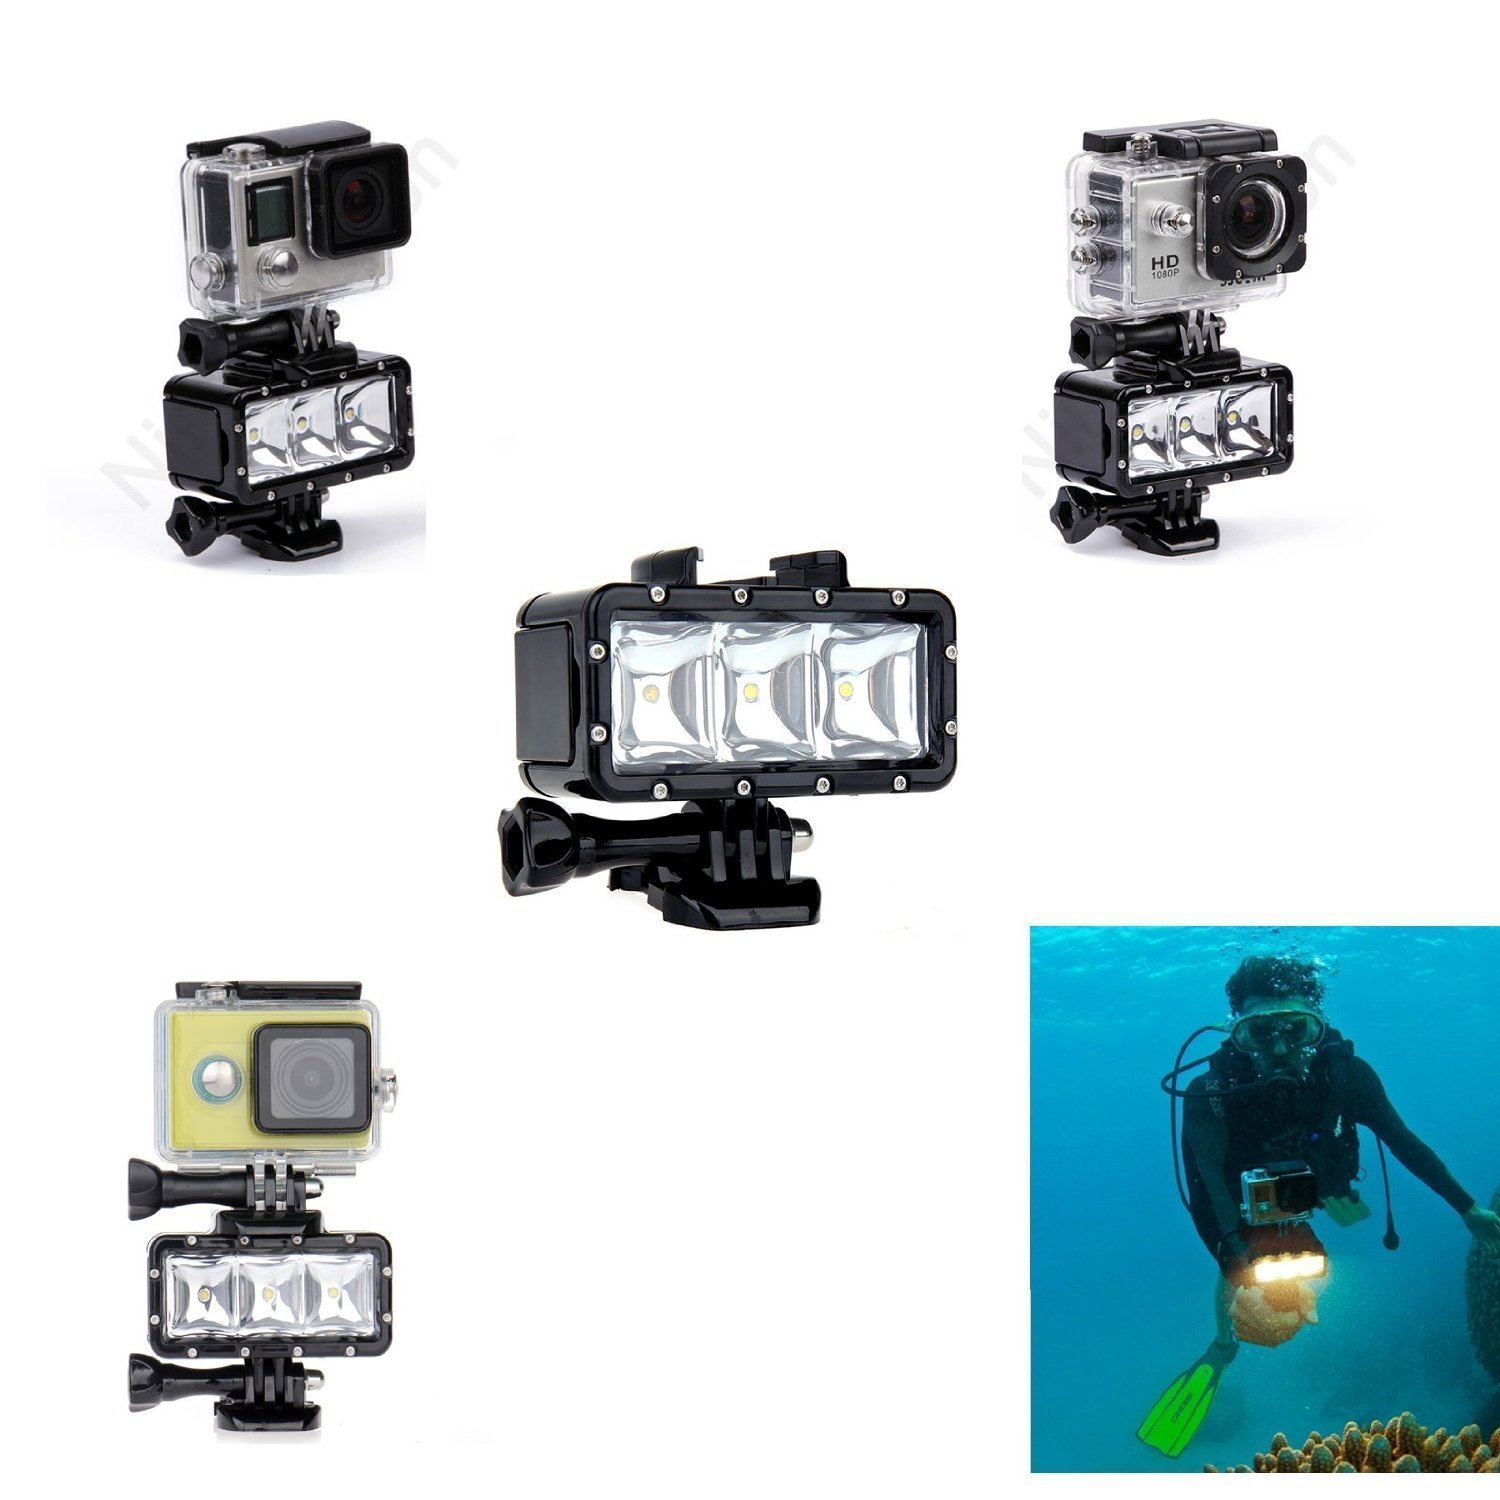 New Waterproof Diving Light High Power Dimmable LED Light Underwater Light For Gopro Hero 4/3+/3/2/SJCAM SJ4000/SJ5000/Xiaomi Yi with 1200mAh Built-in Rechargeable Battery Charging